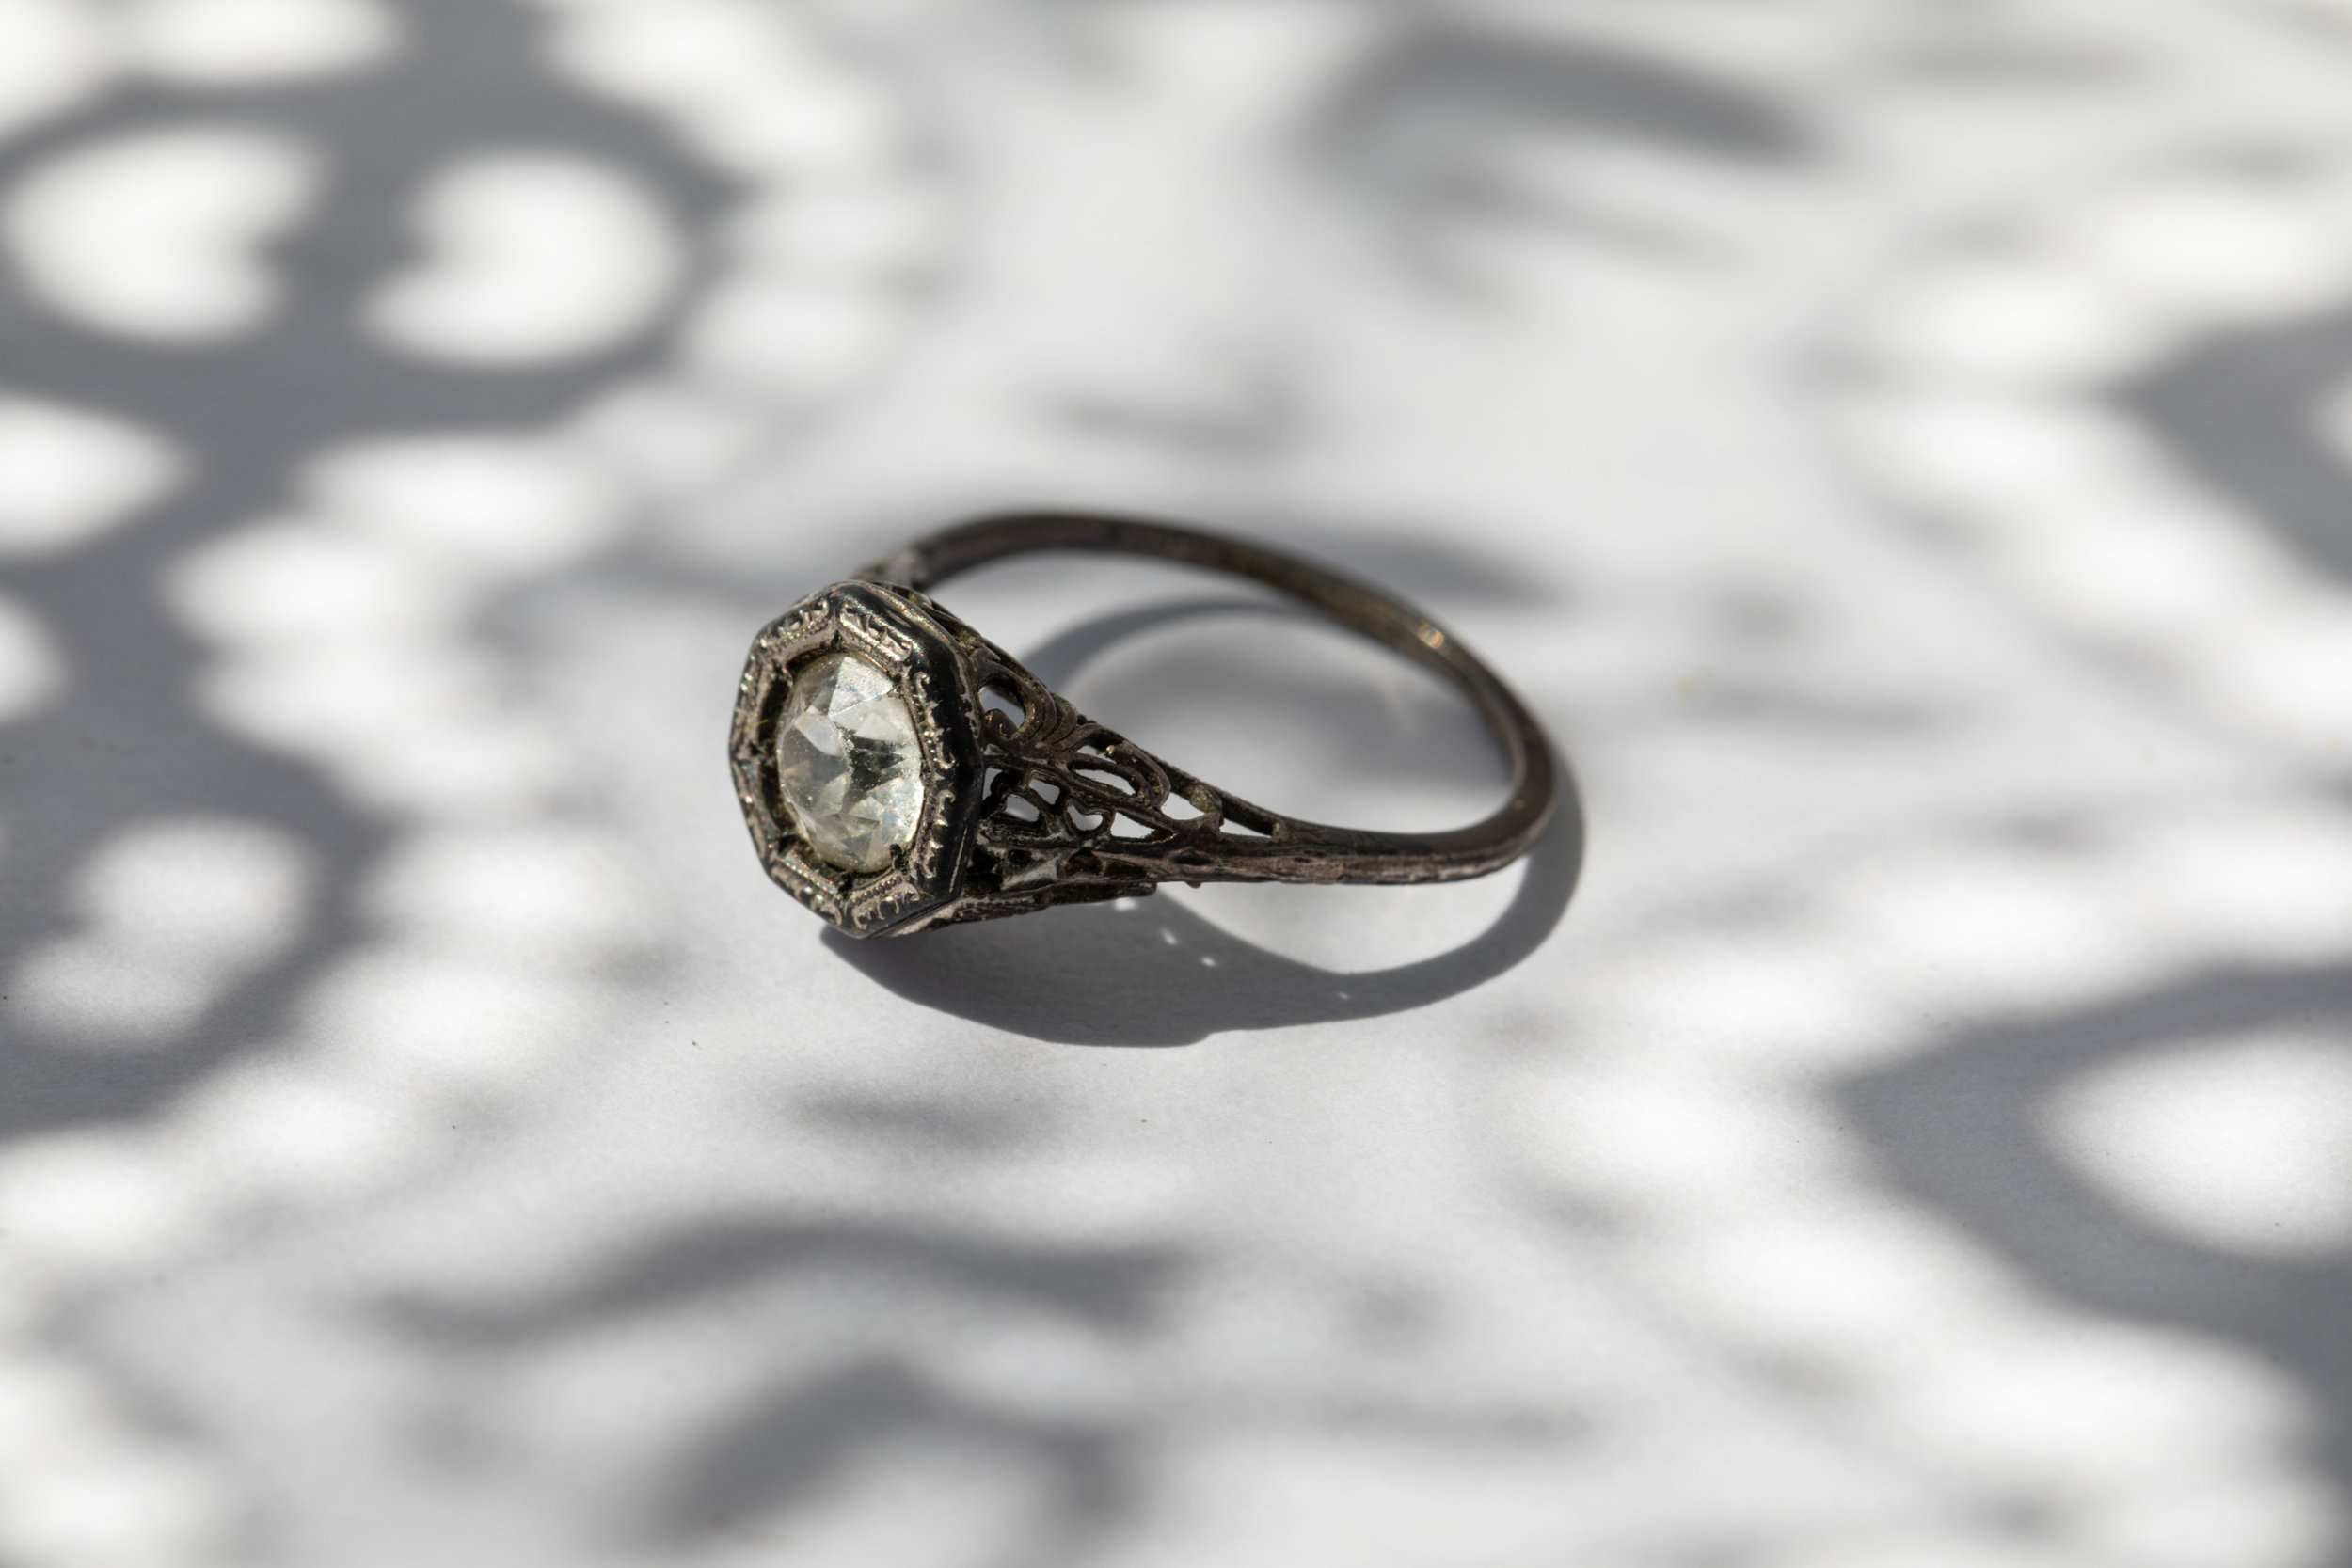 A relative ask if I found the diamond ring that Grandma Zita hid around the house for safe keeping. Last known hiding spot was a flour sack. She's been dead 36 years and the ring is still hidden.  This is a ring found in my Great Grandmother's belongings.  We don't believe it's the ring she kept in hiding.